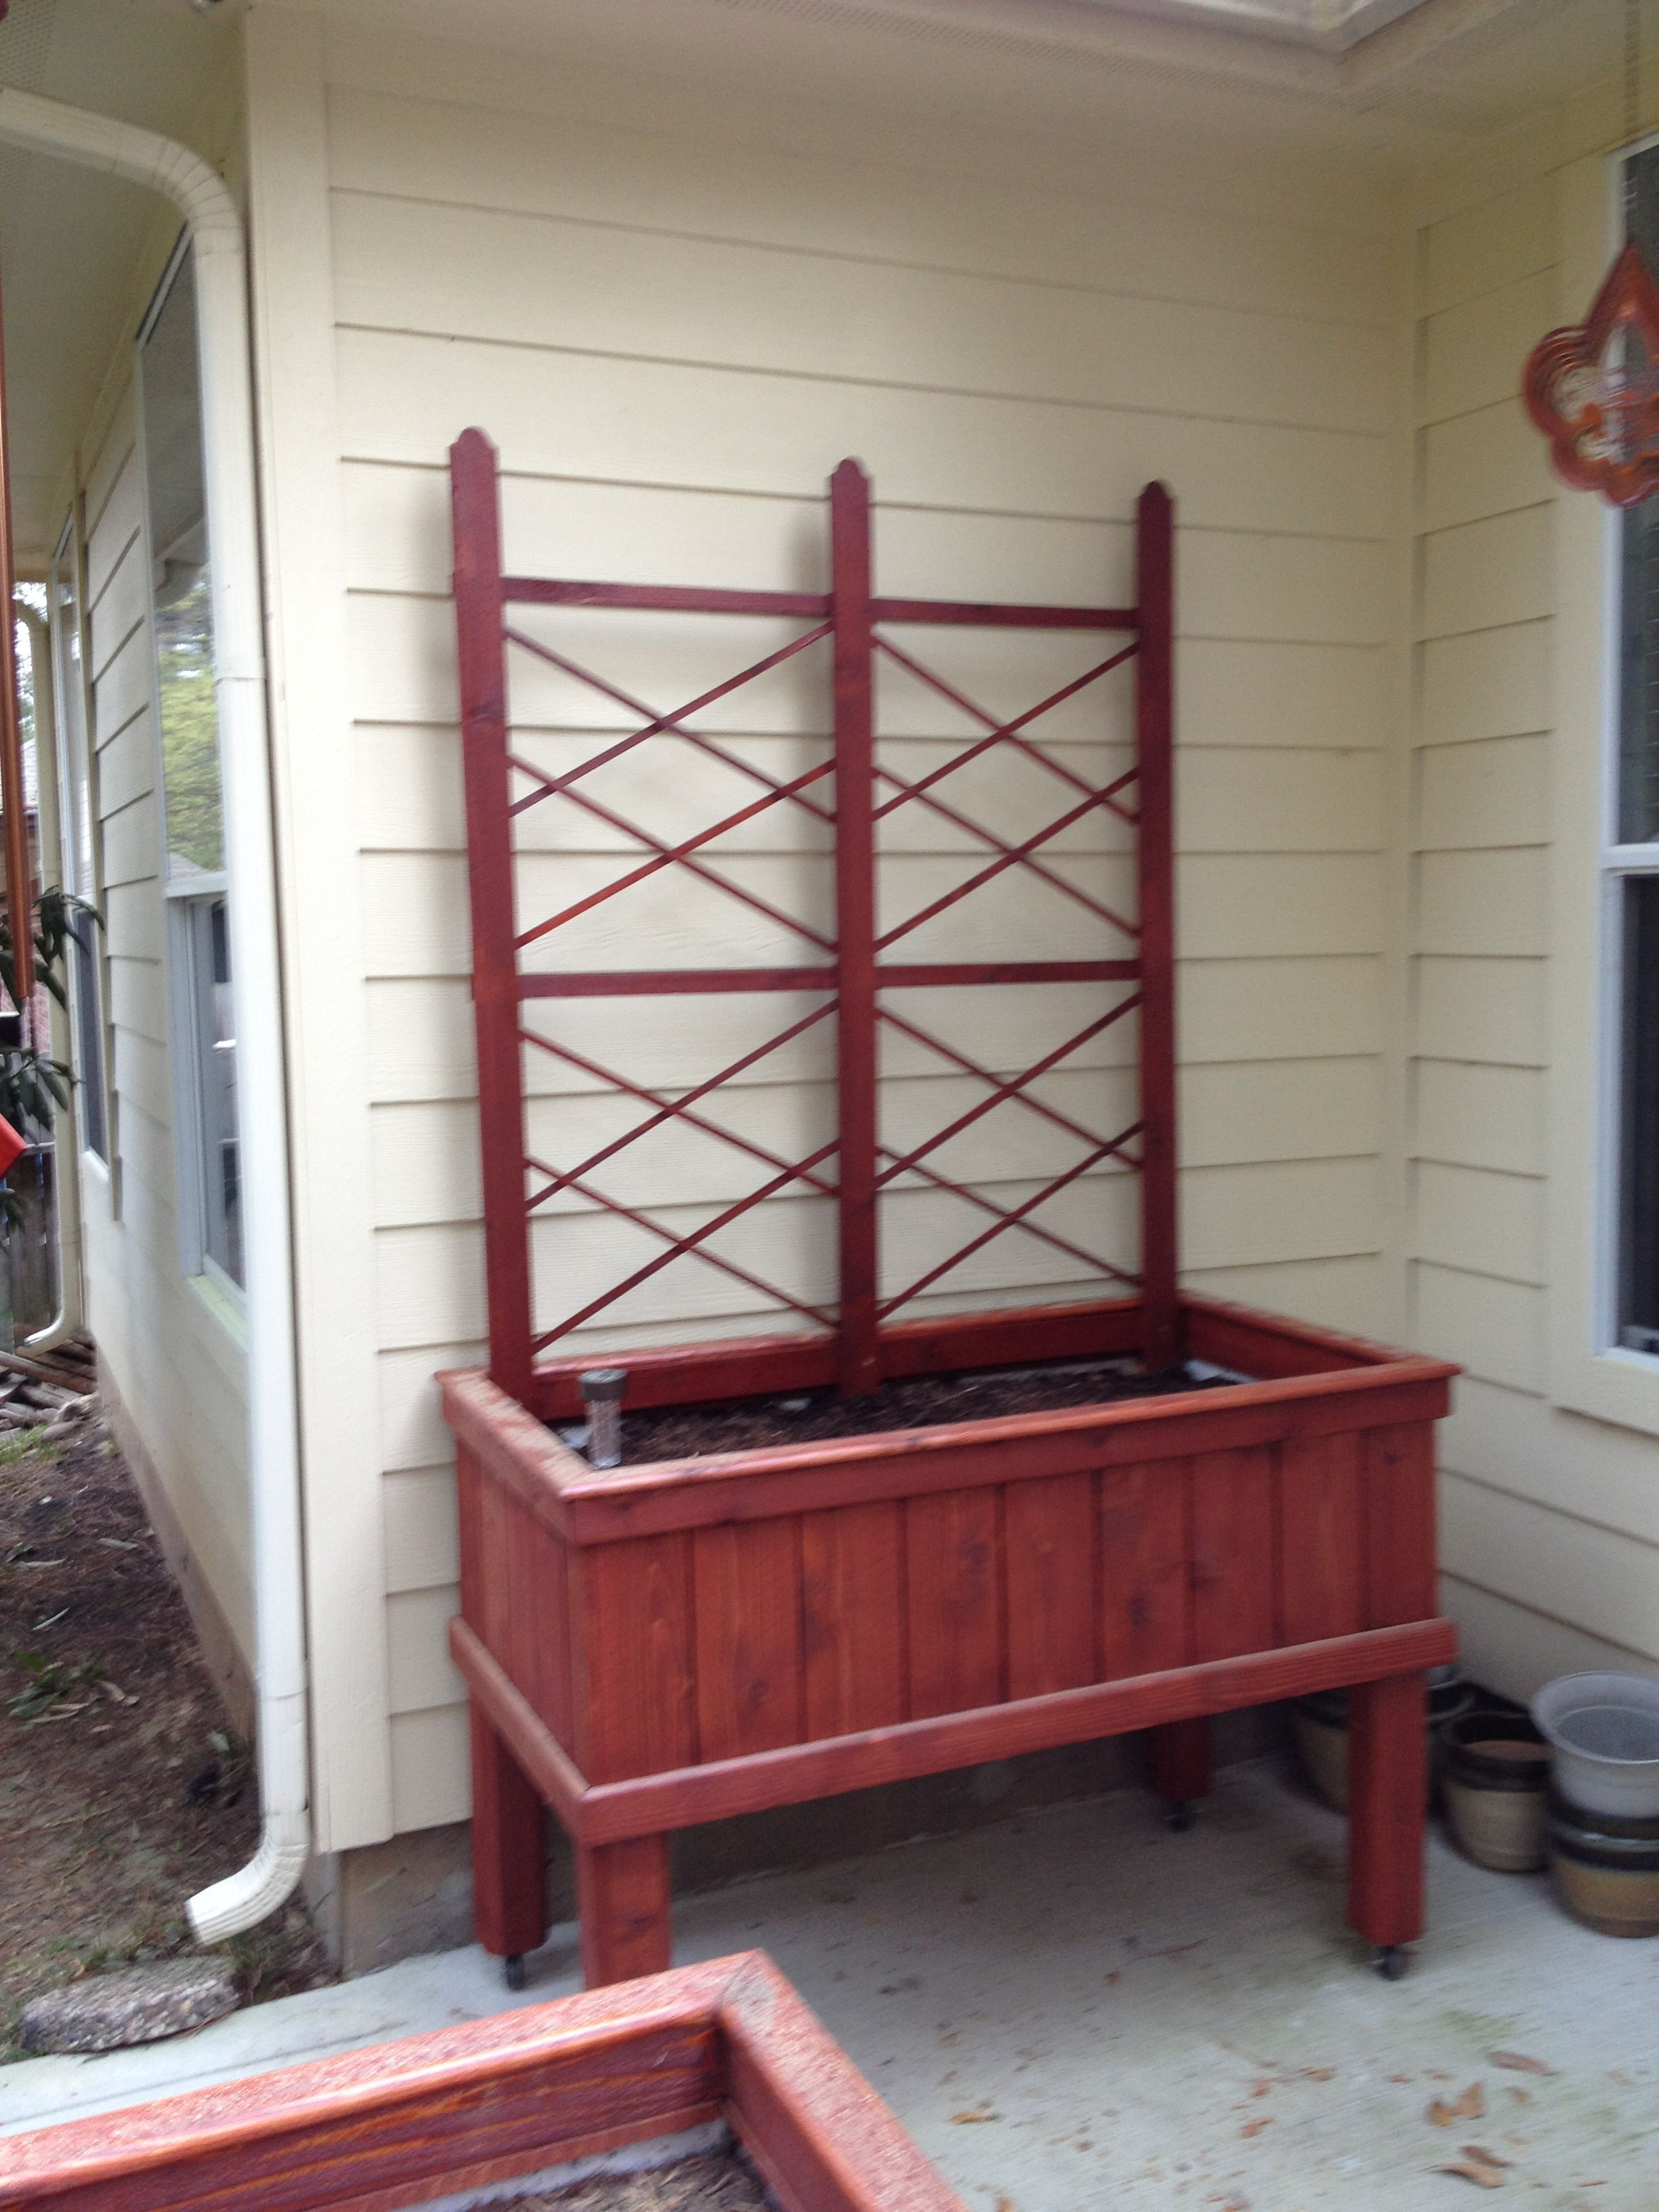 Completed Planter Box With Trellis Attached Legs Of